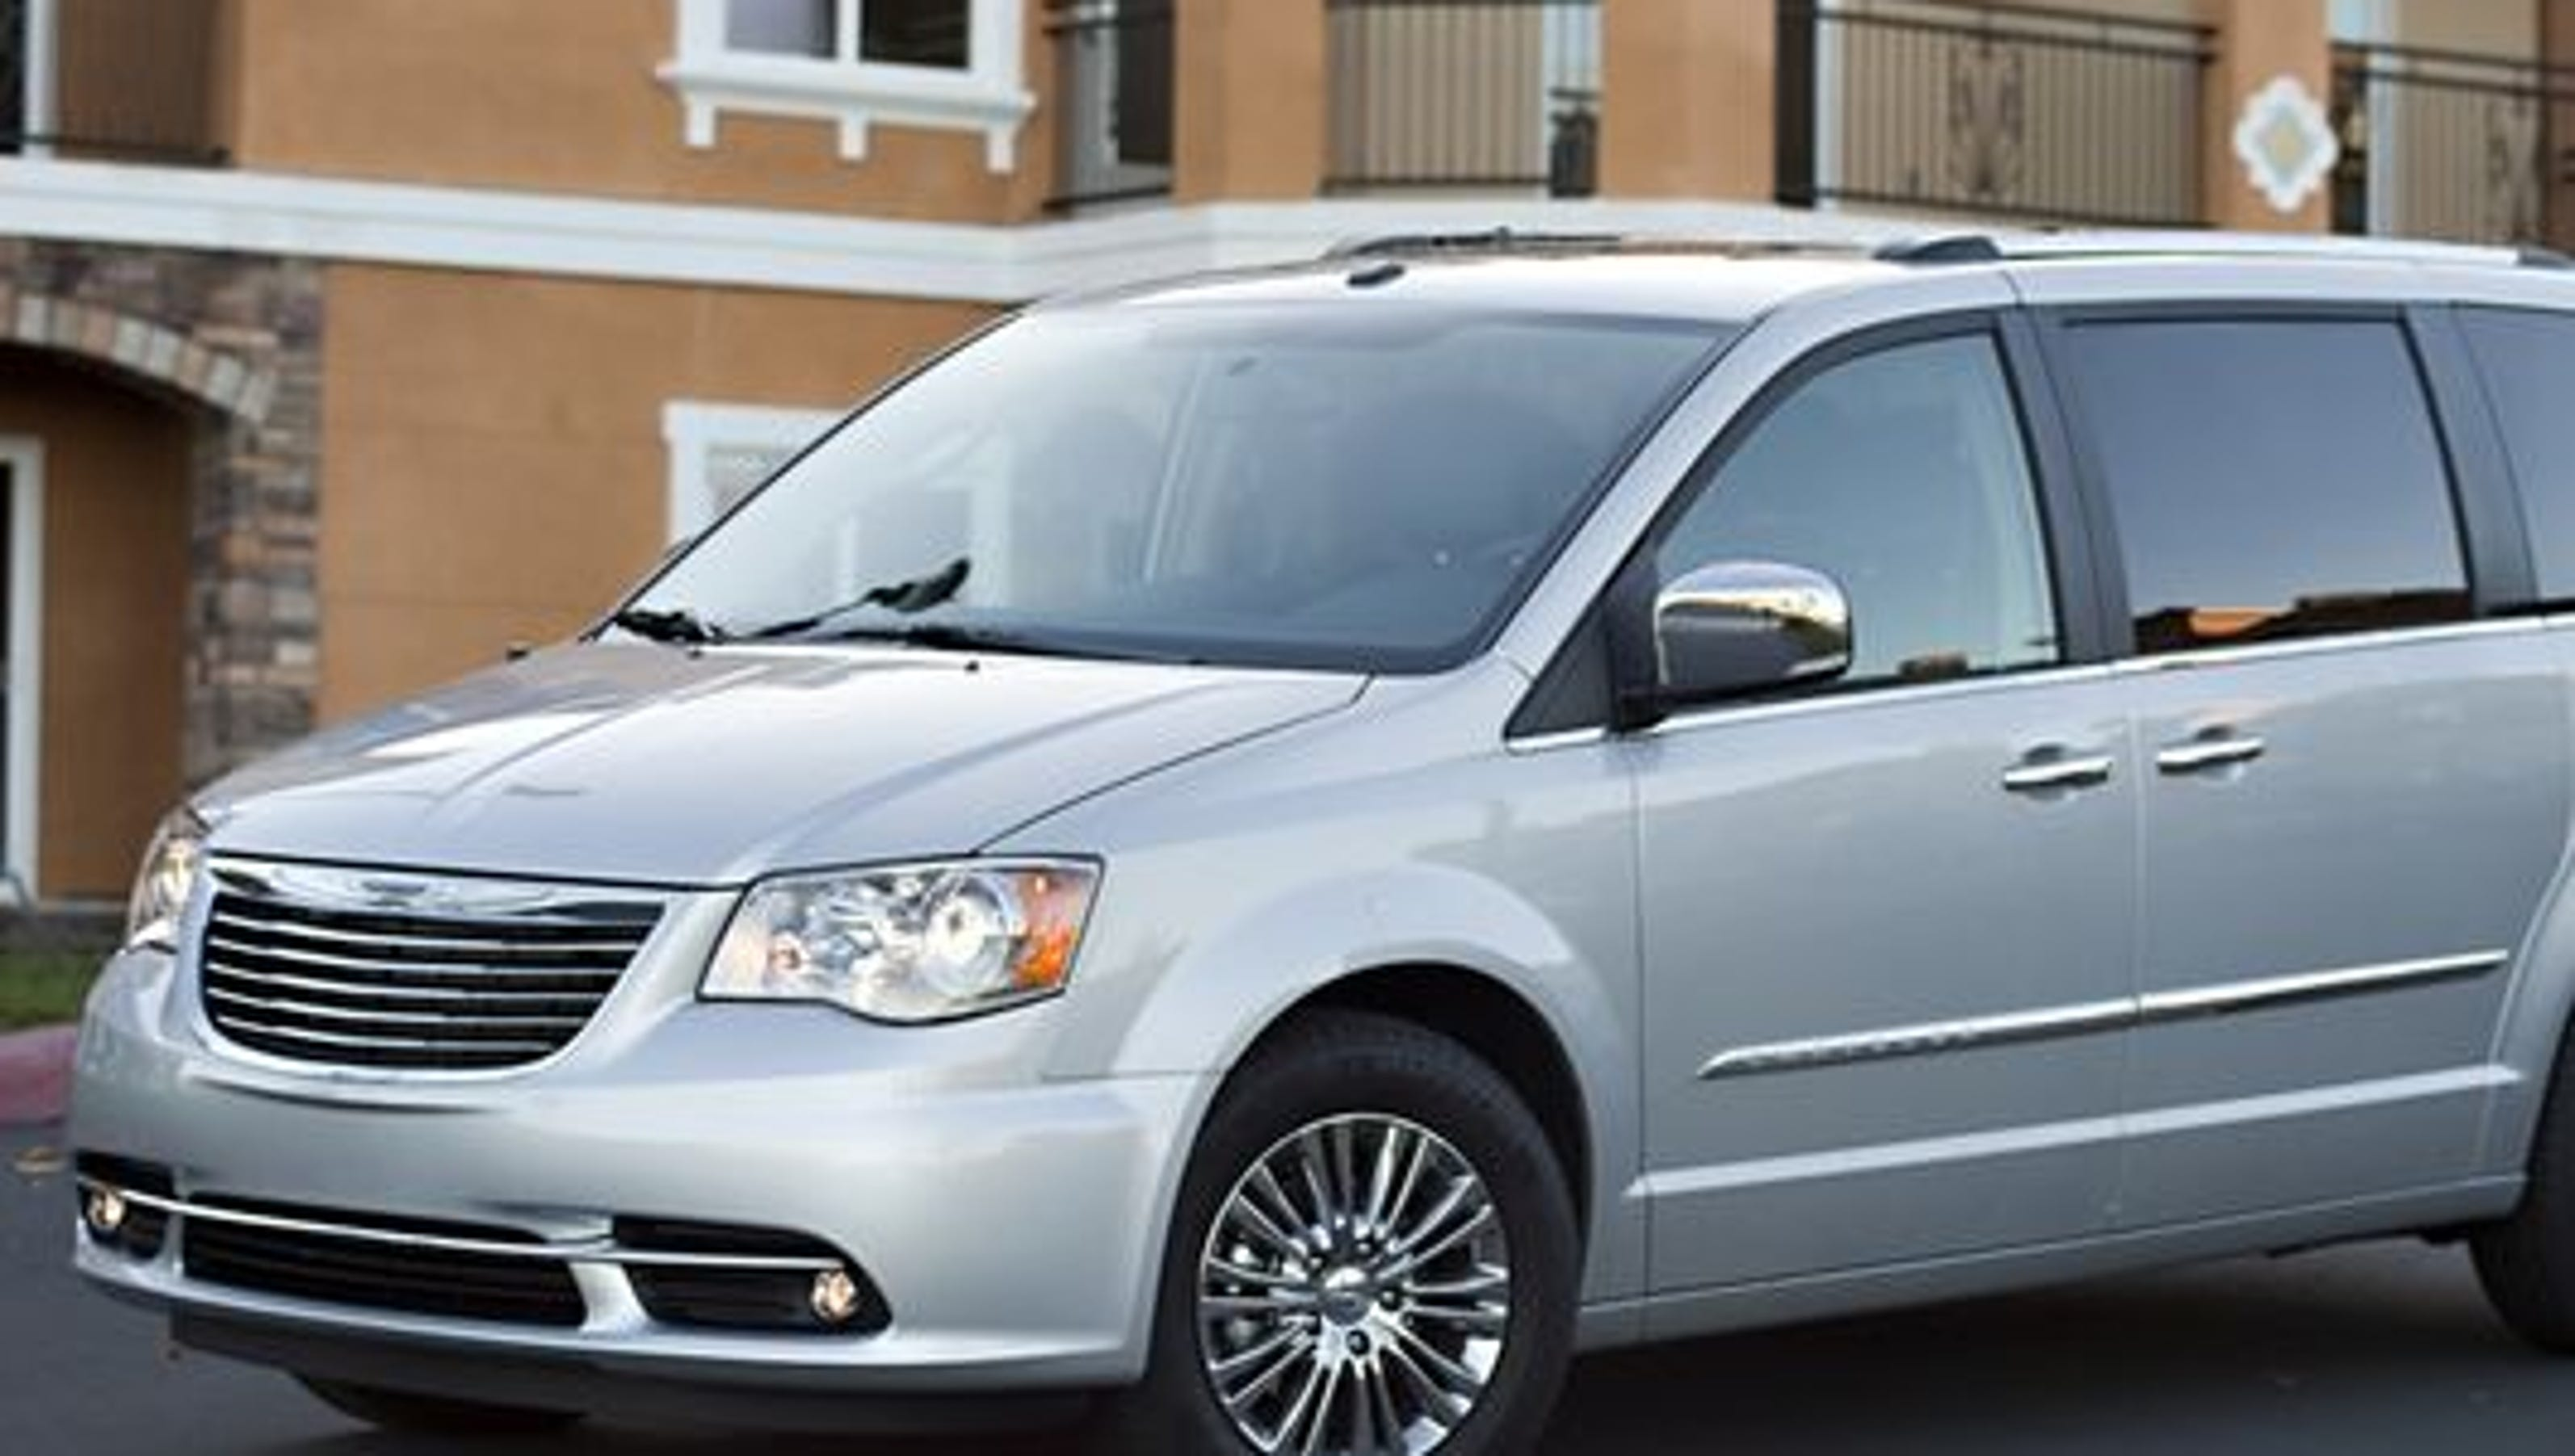 chrysler recalls 700k vehicles for ignition switches. Black Bedroom Furniture Sets. Home Design Ideas